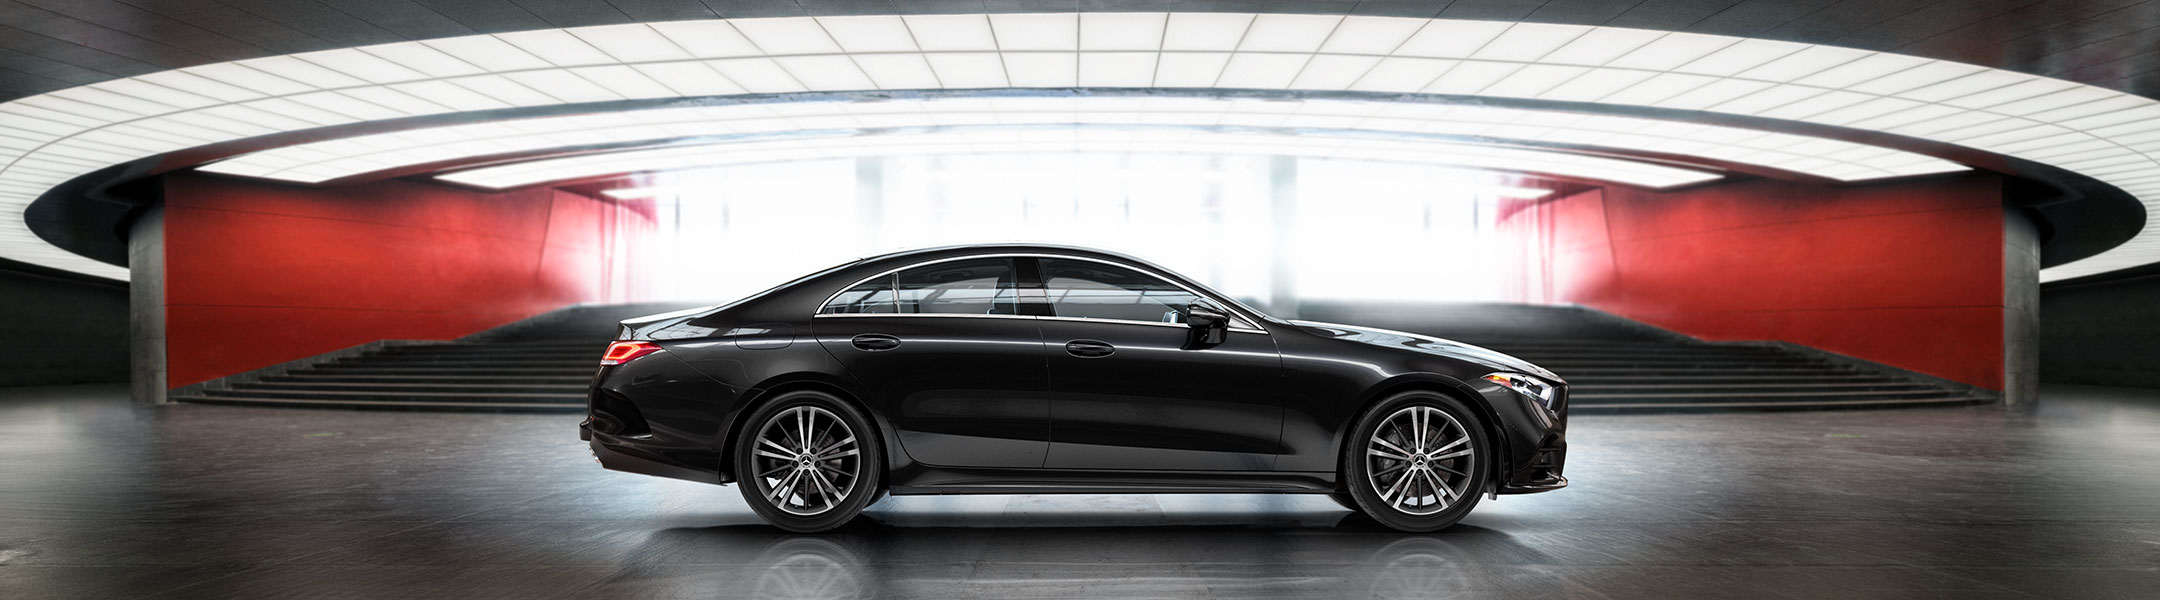 A black CLS is parked in front of a modern architectural background.